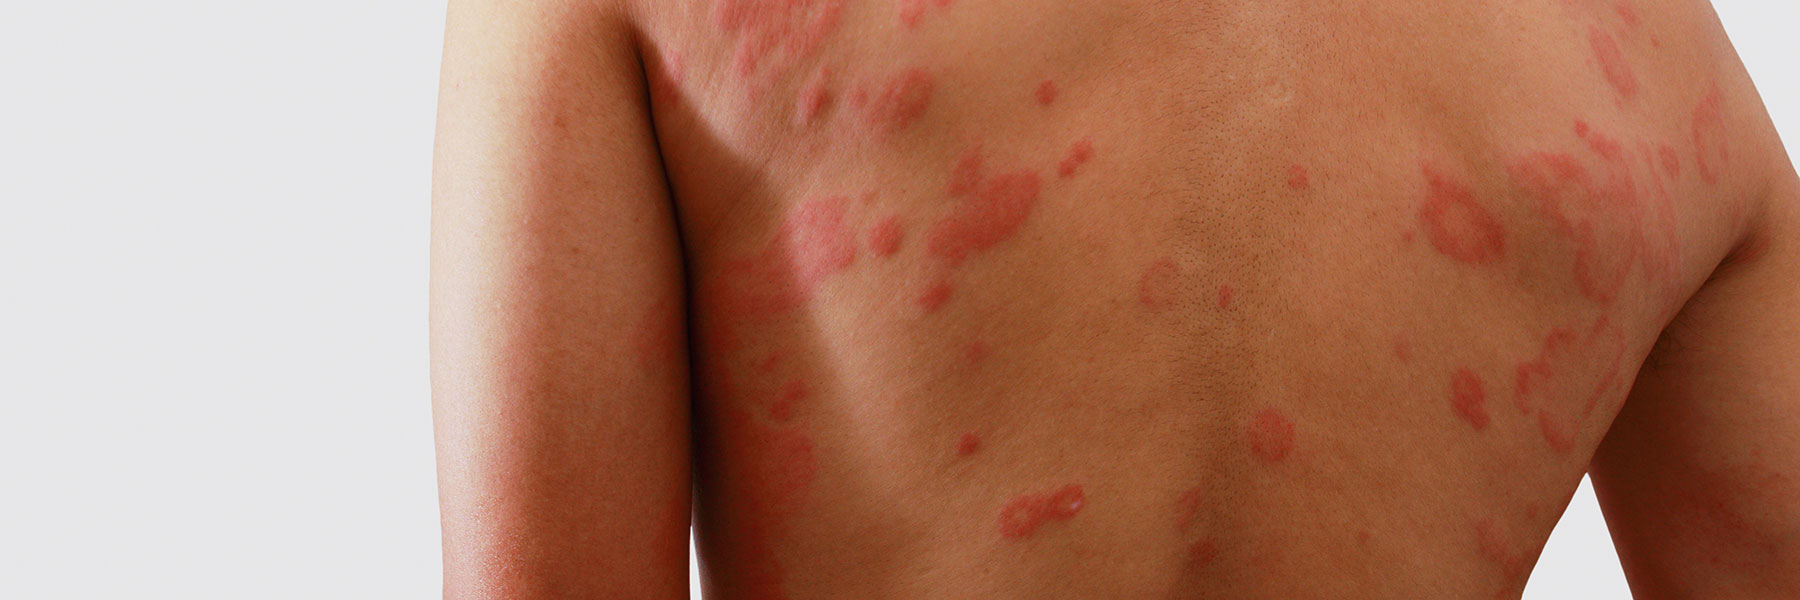 Portland Eczema Treatments